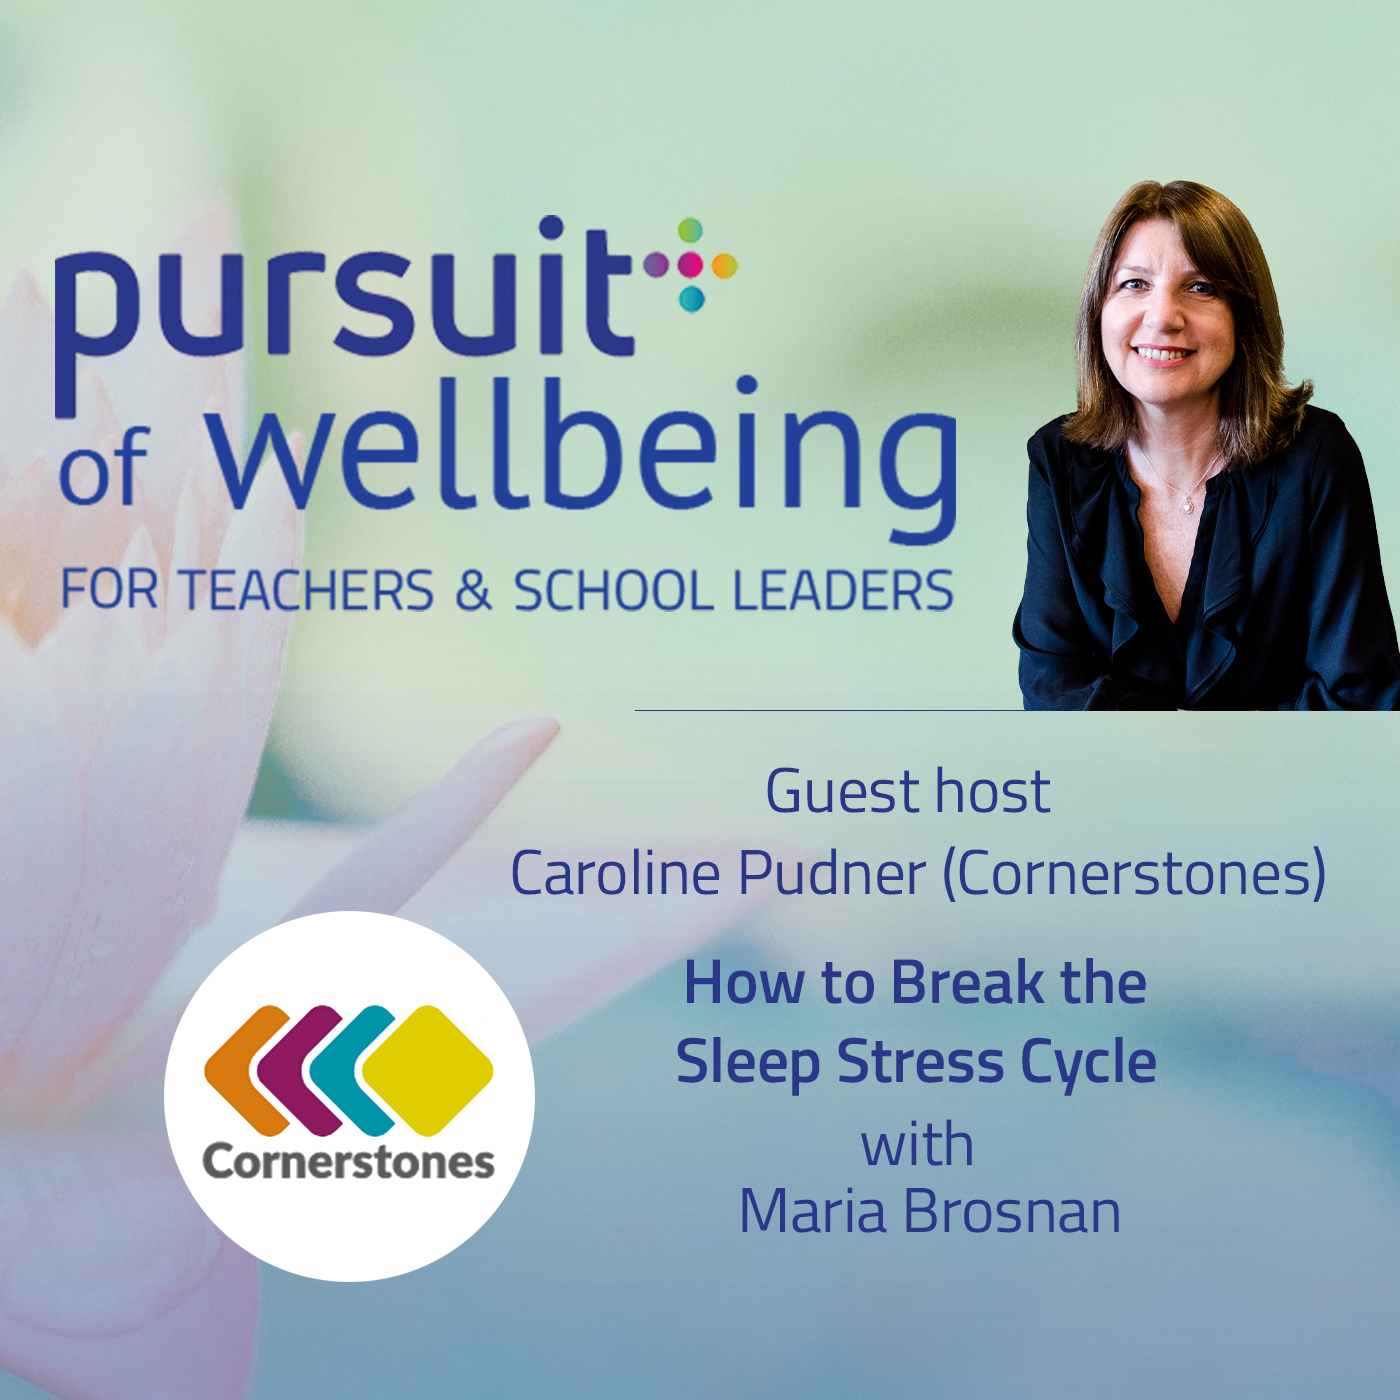 How to Break the Sleep Stress Cycle with Maria Brosnan